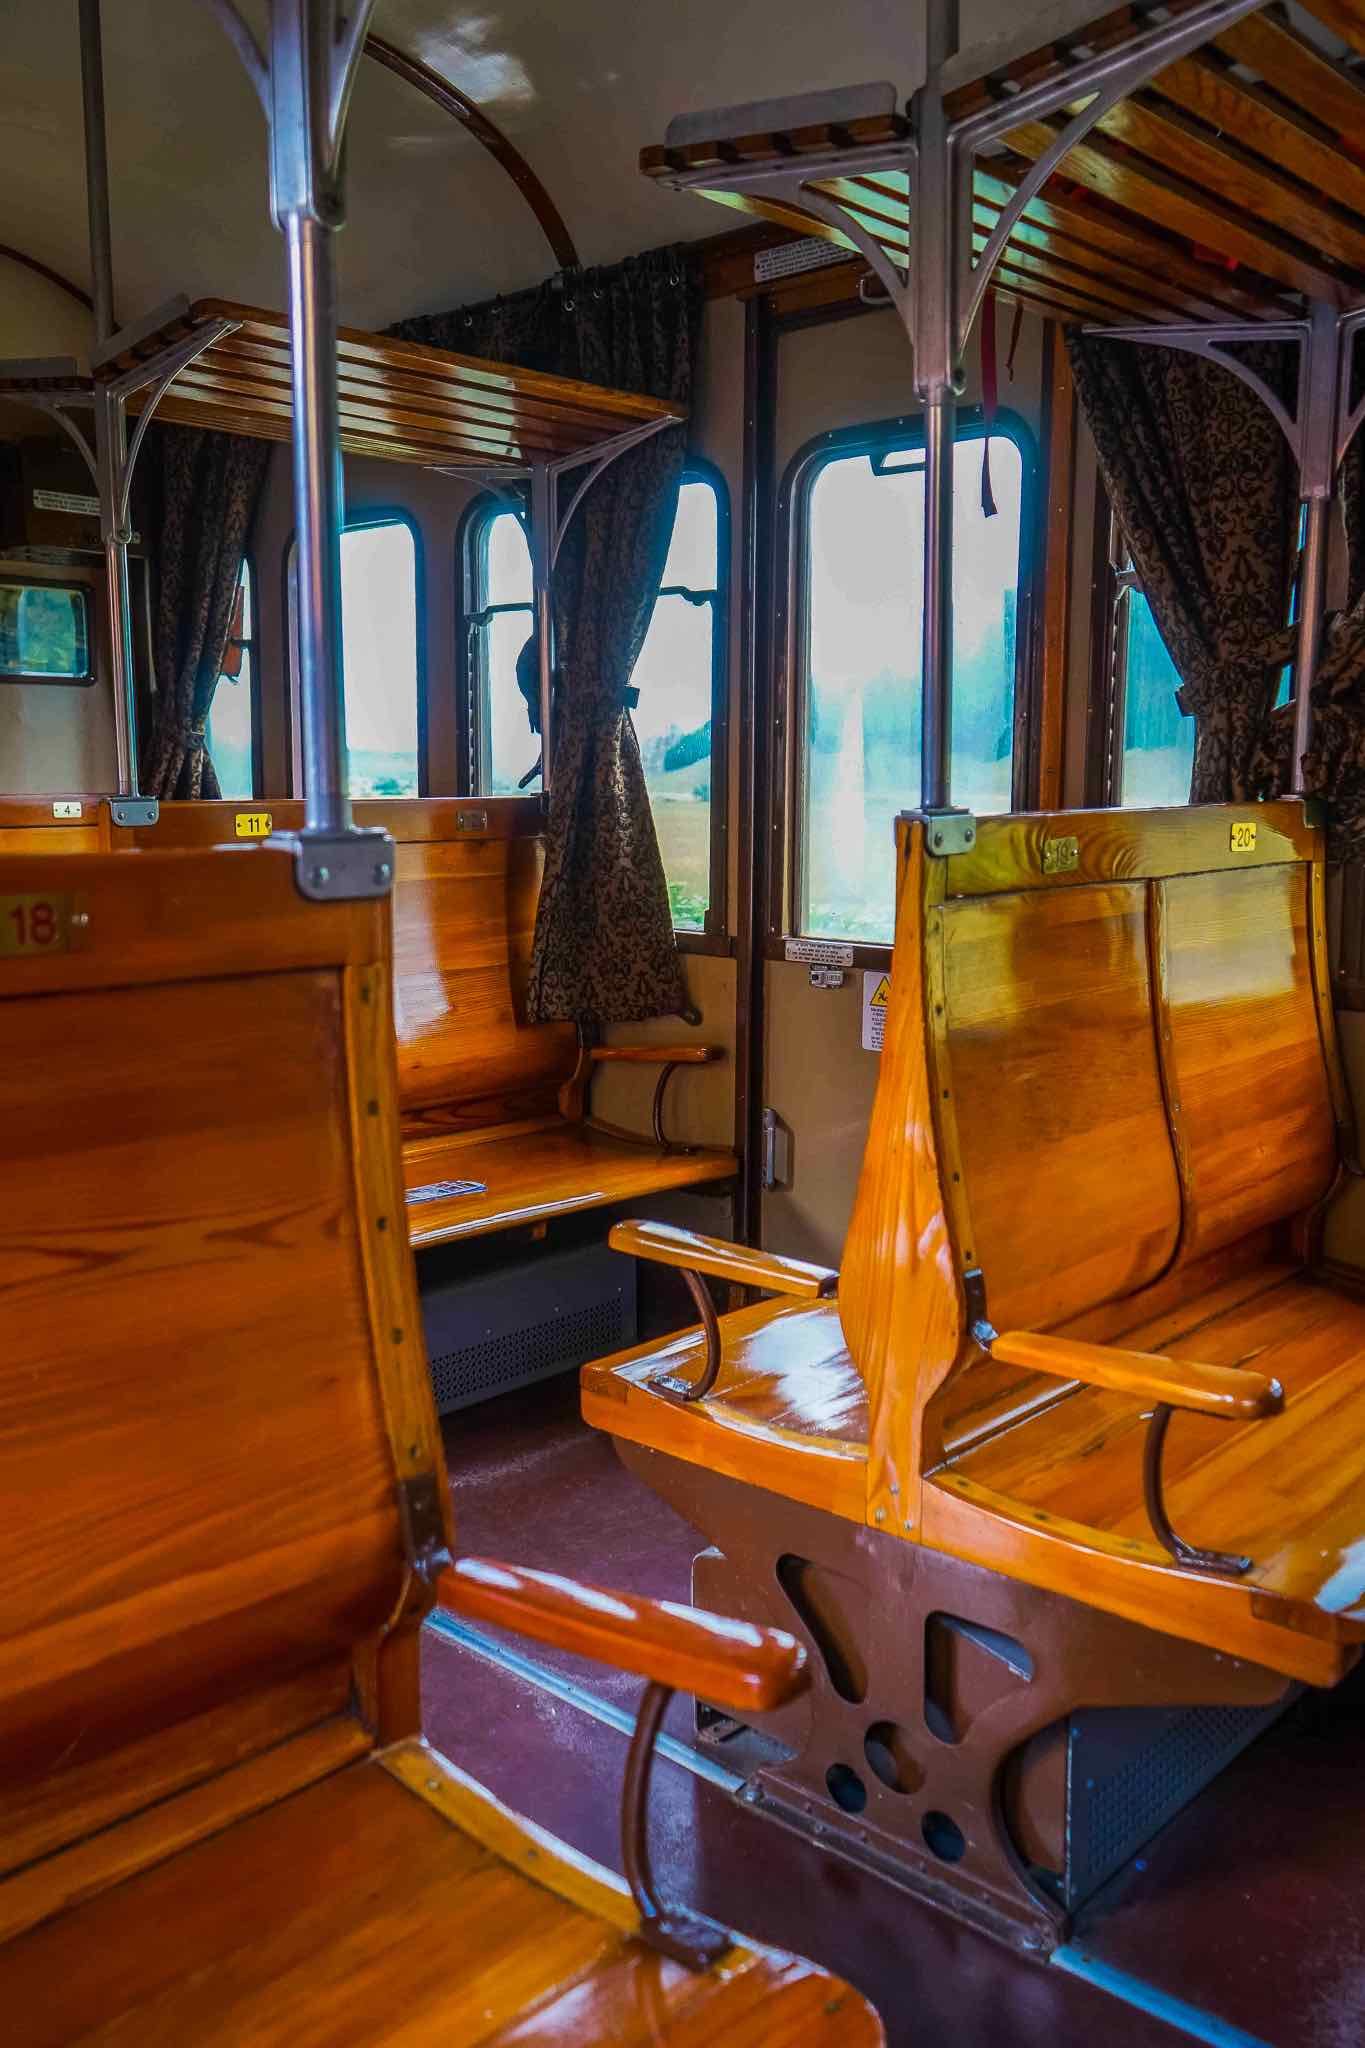 The original wooden benches inside one of the vintage carriages of the Italian Trans-Siberian railway